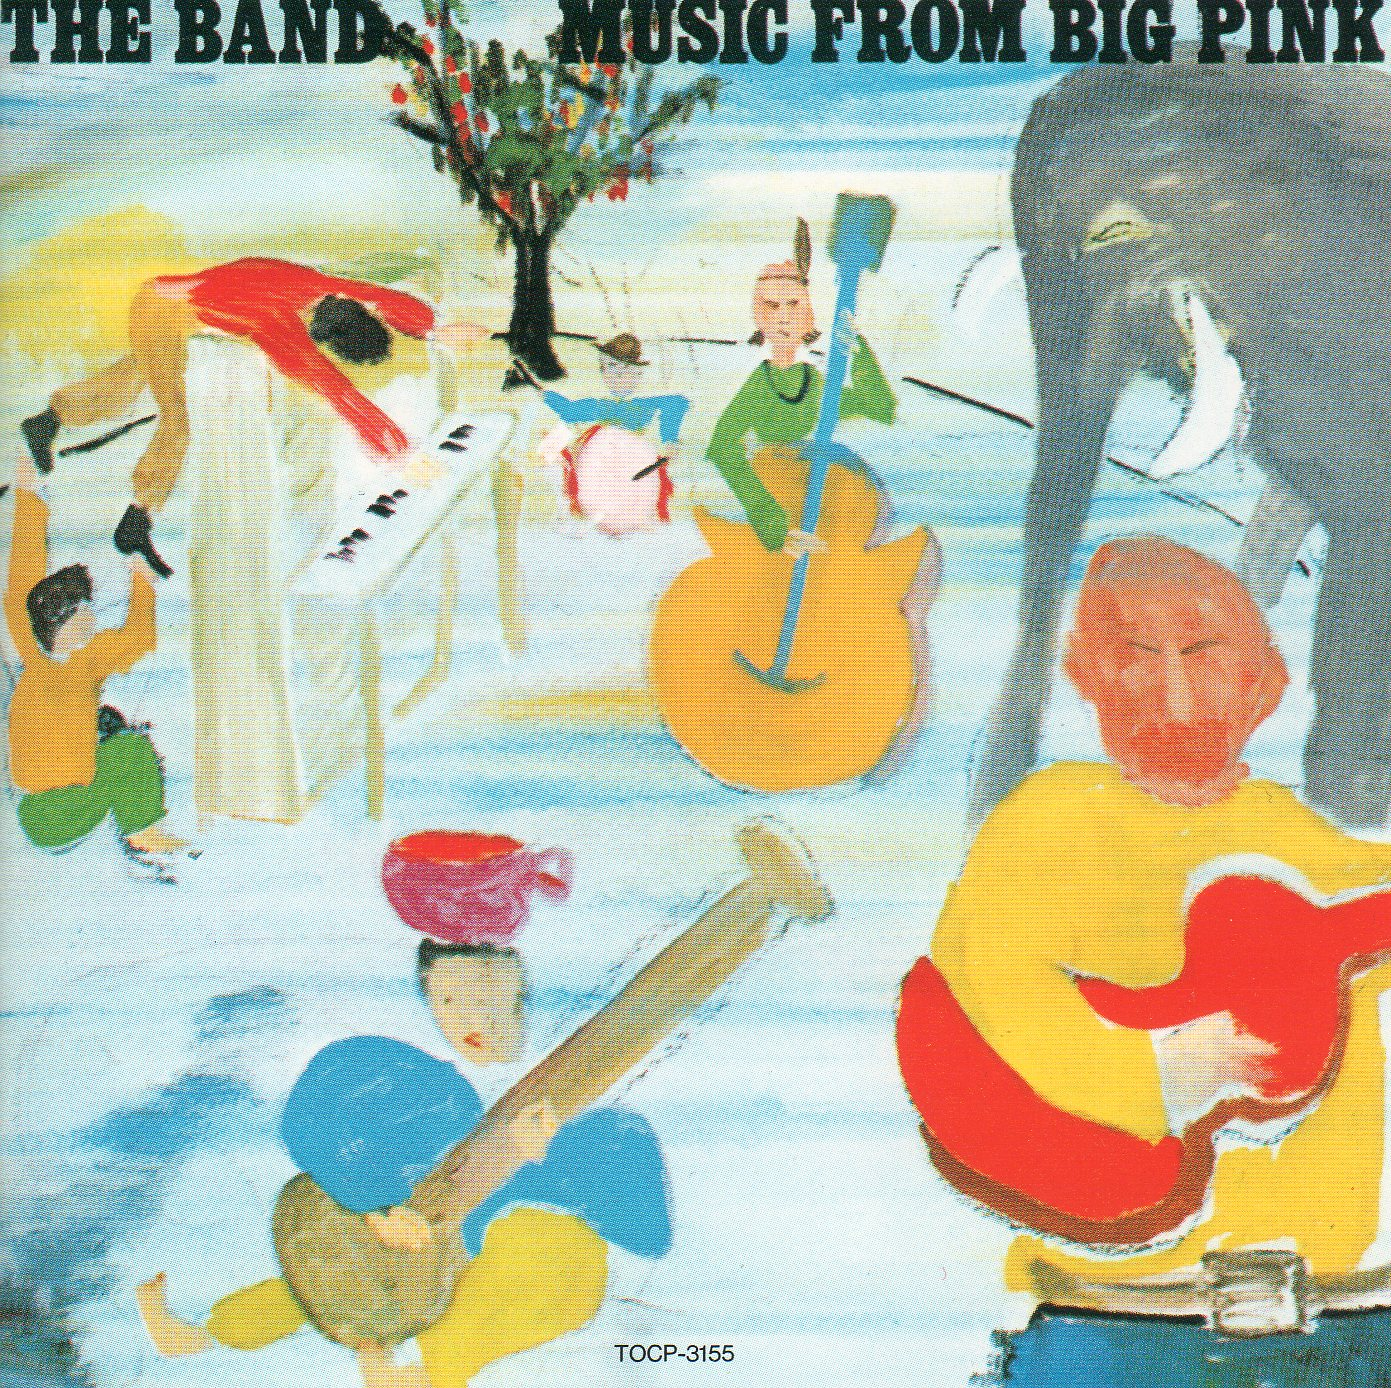 CD0713THE_BAND-MUSIC_FROM_BIG_PINK-front